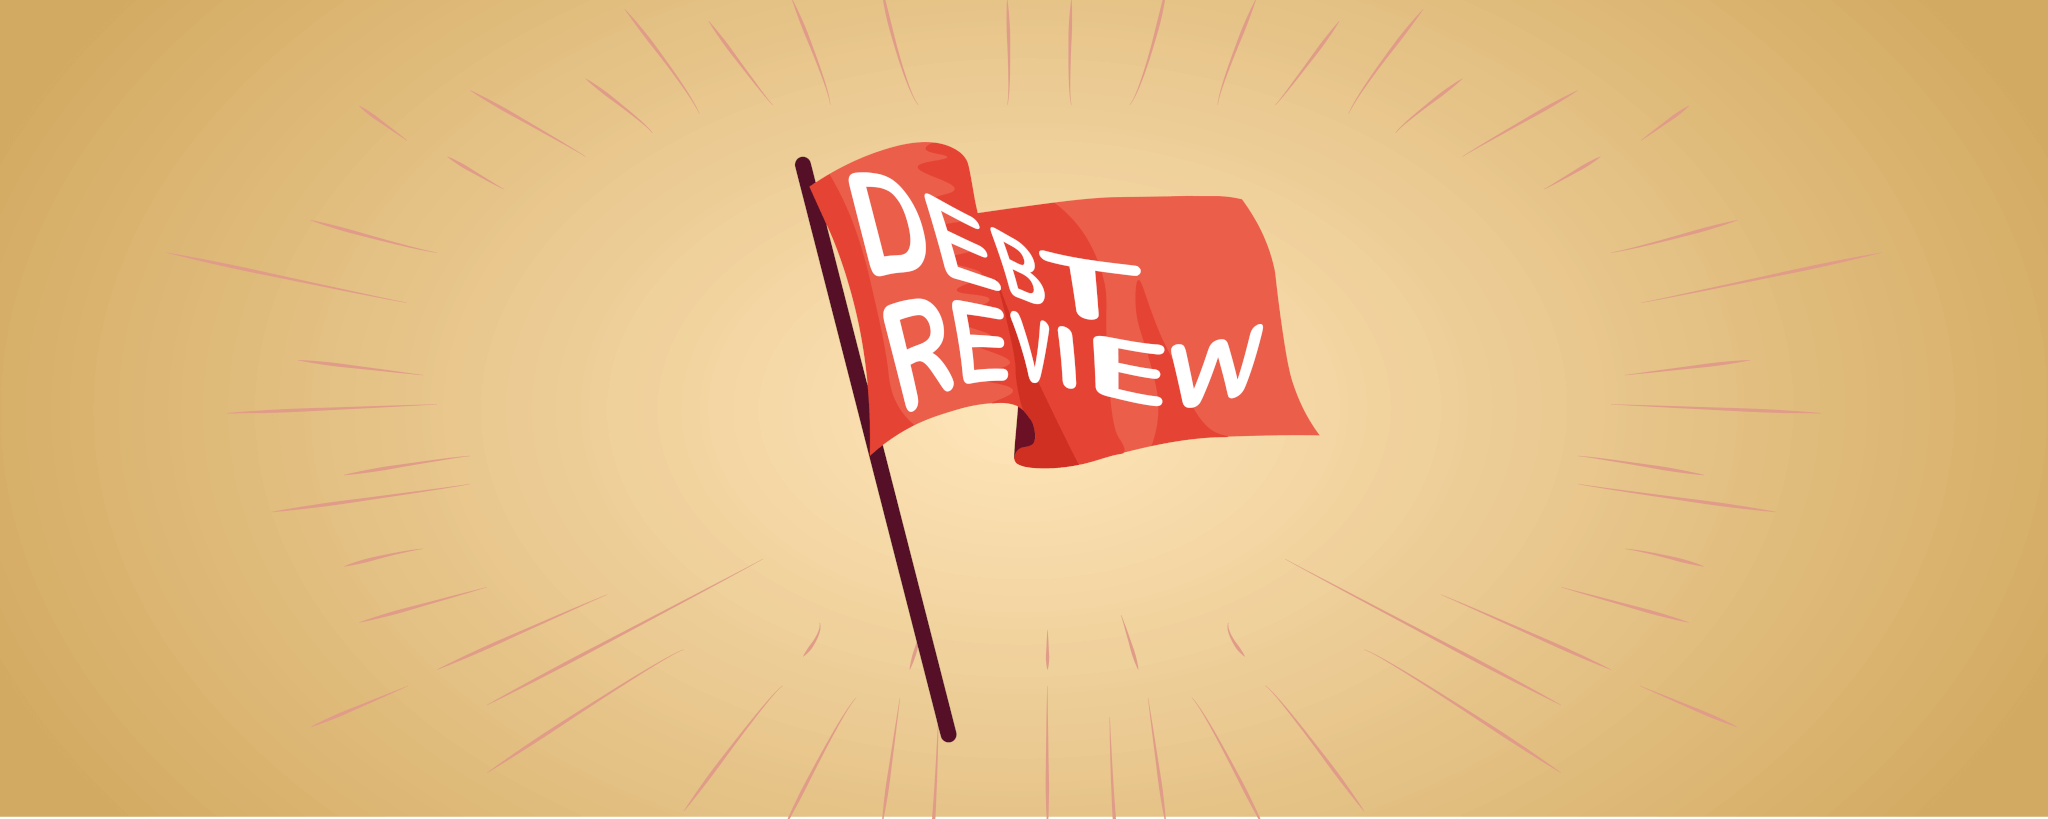 Debt review flag